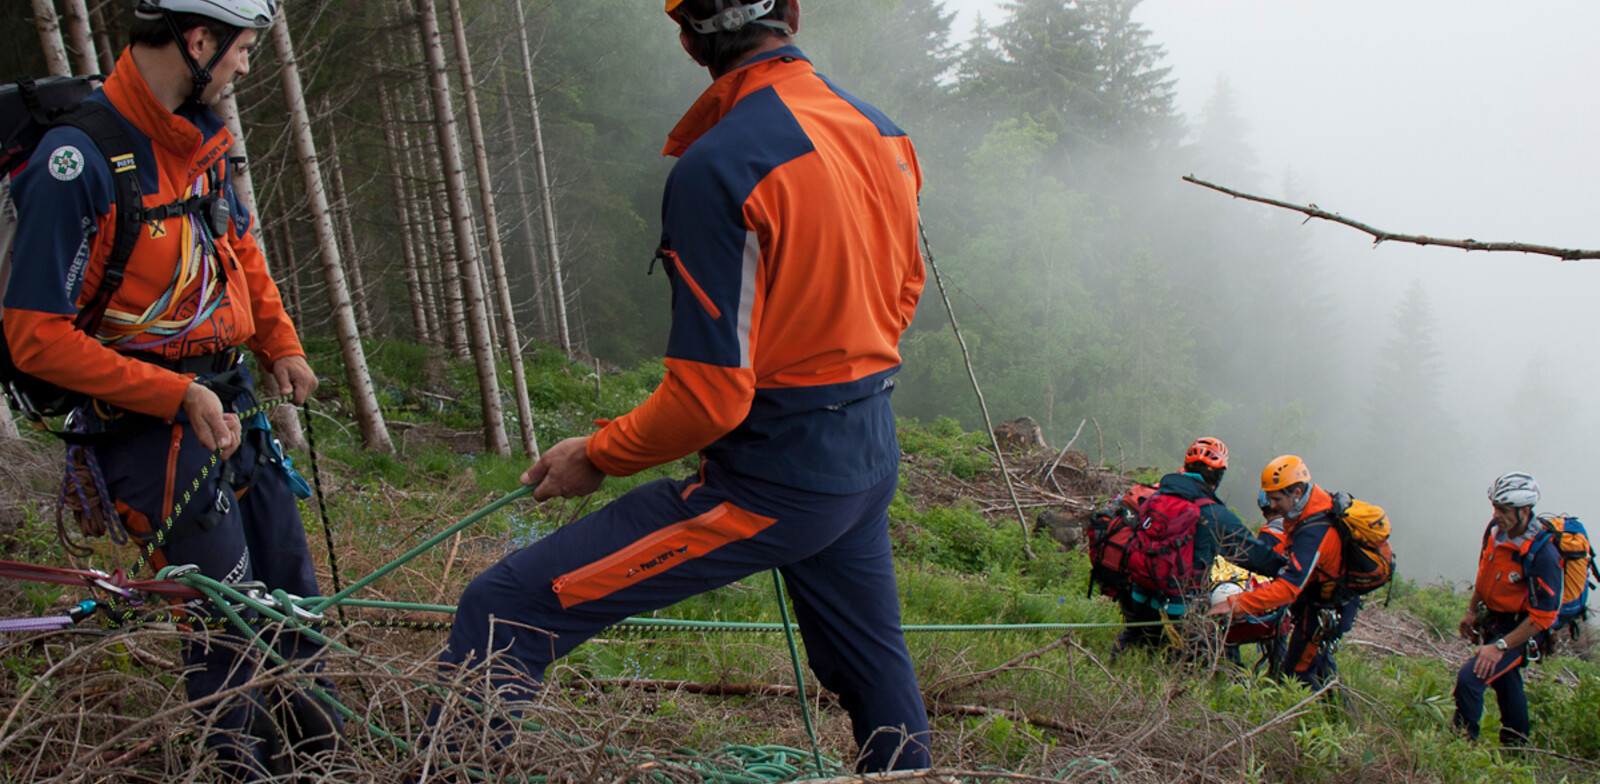 The rescue out of difficult terrain is being trained at the courses. | © c Bergrettung Salzburg